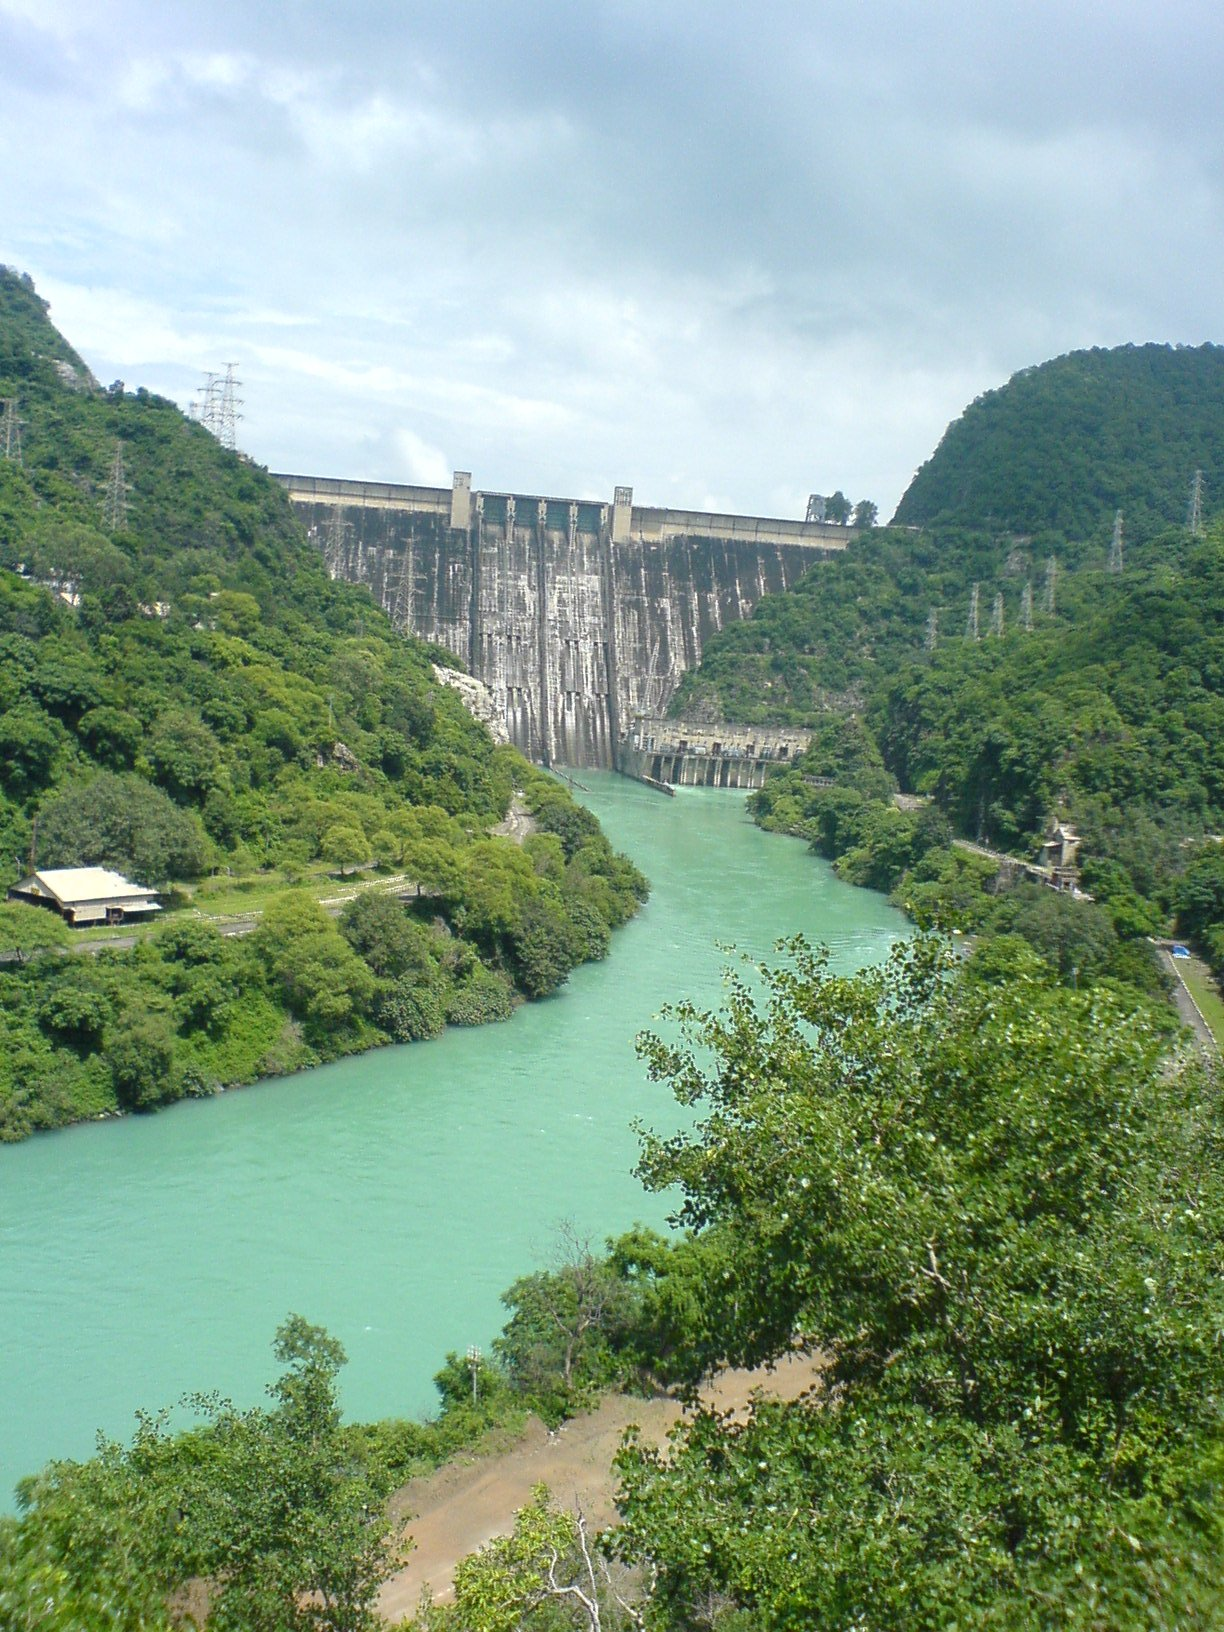 bhakra nangal dam On what basis is bhakra nangal dam called the largest dam in india it is neither the longest (hirakud dam) nor the tallest (tehri dam.